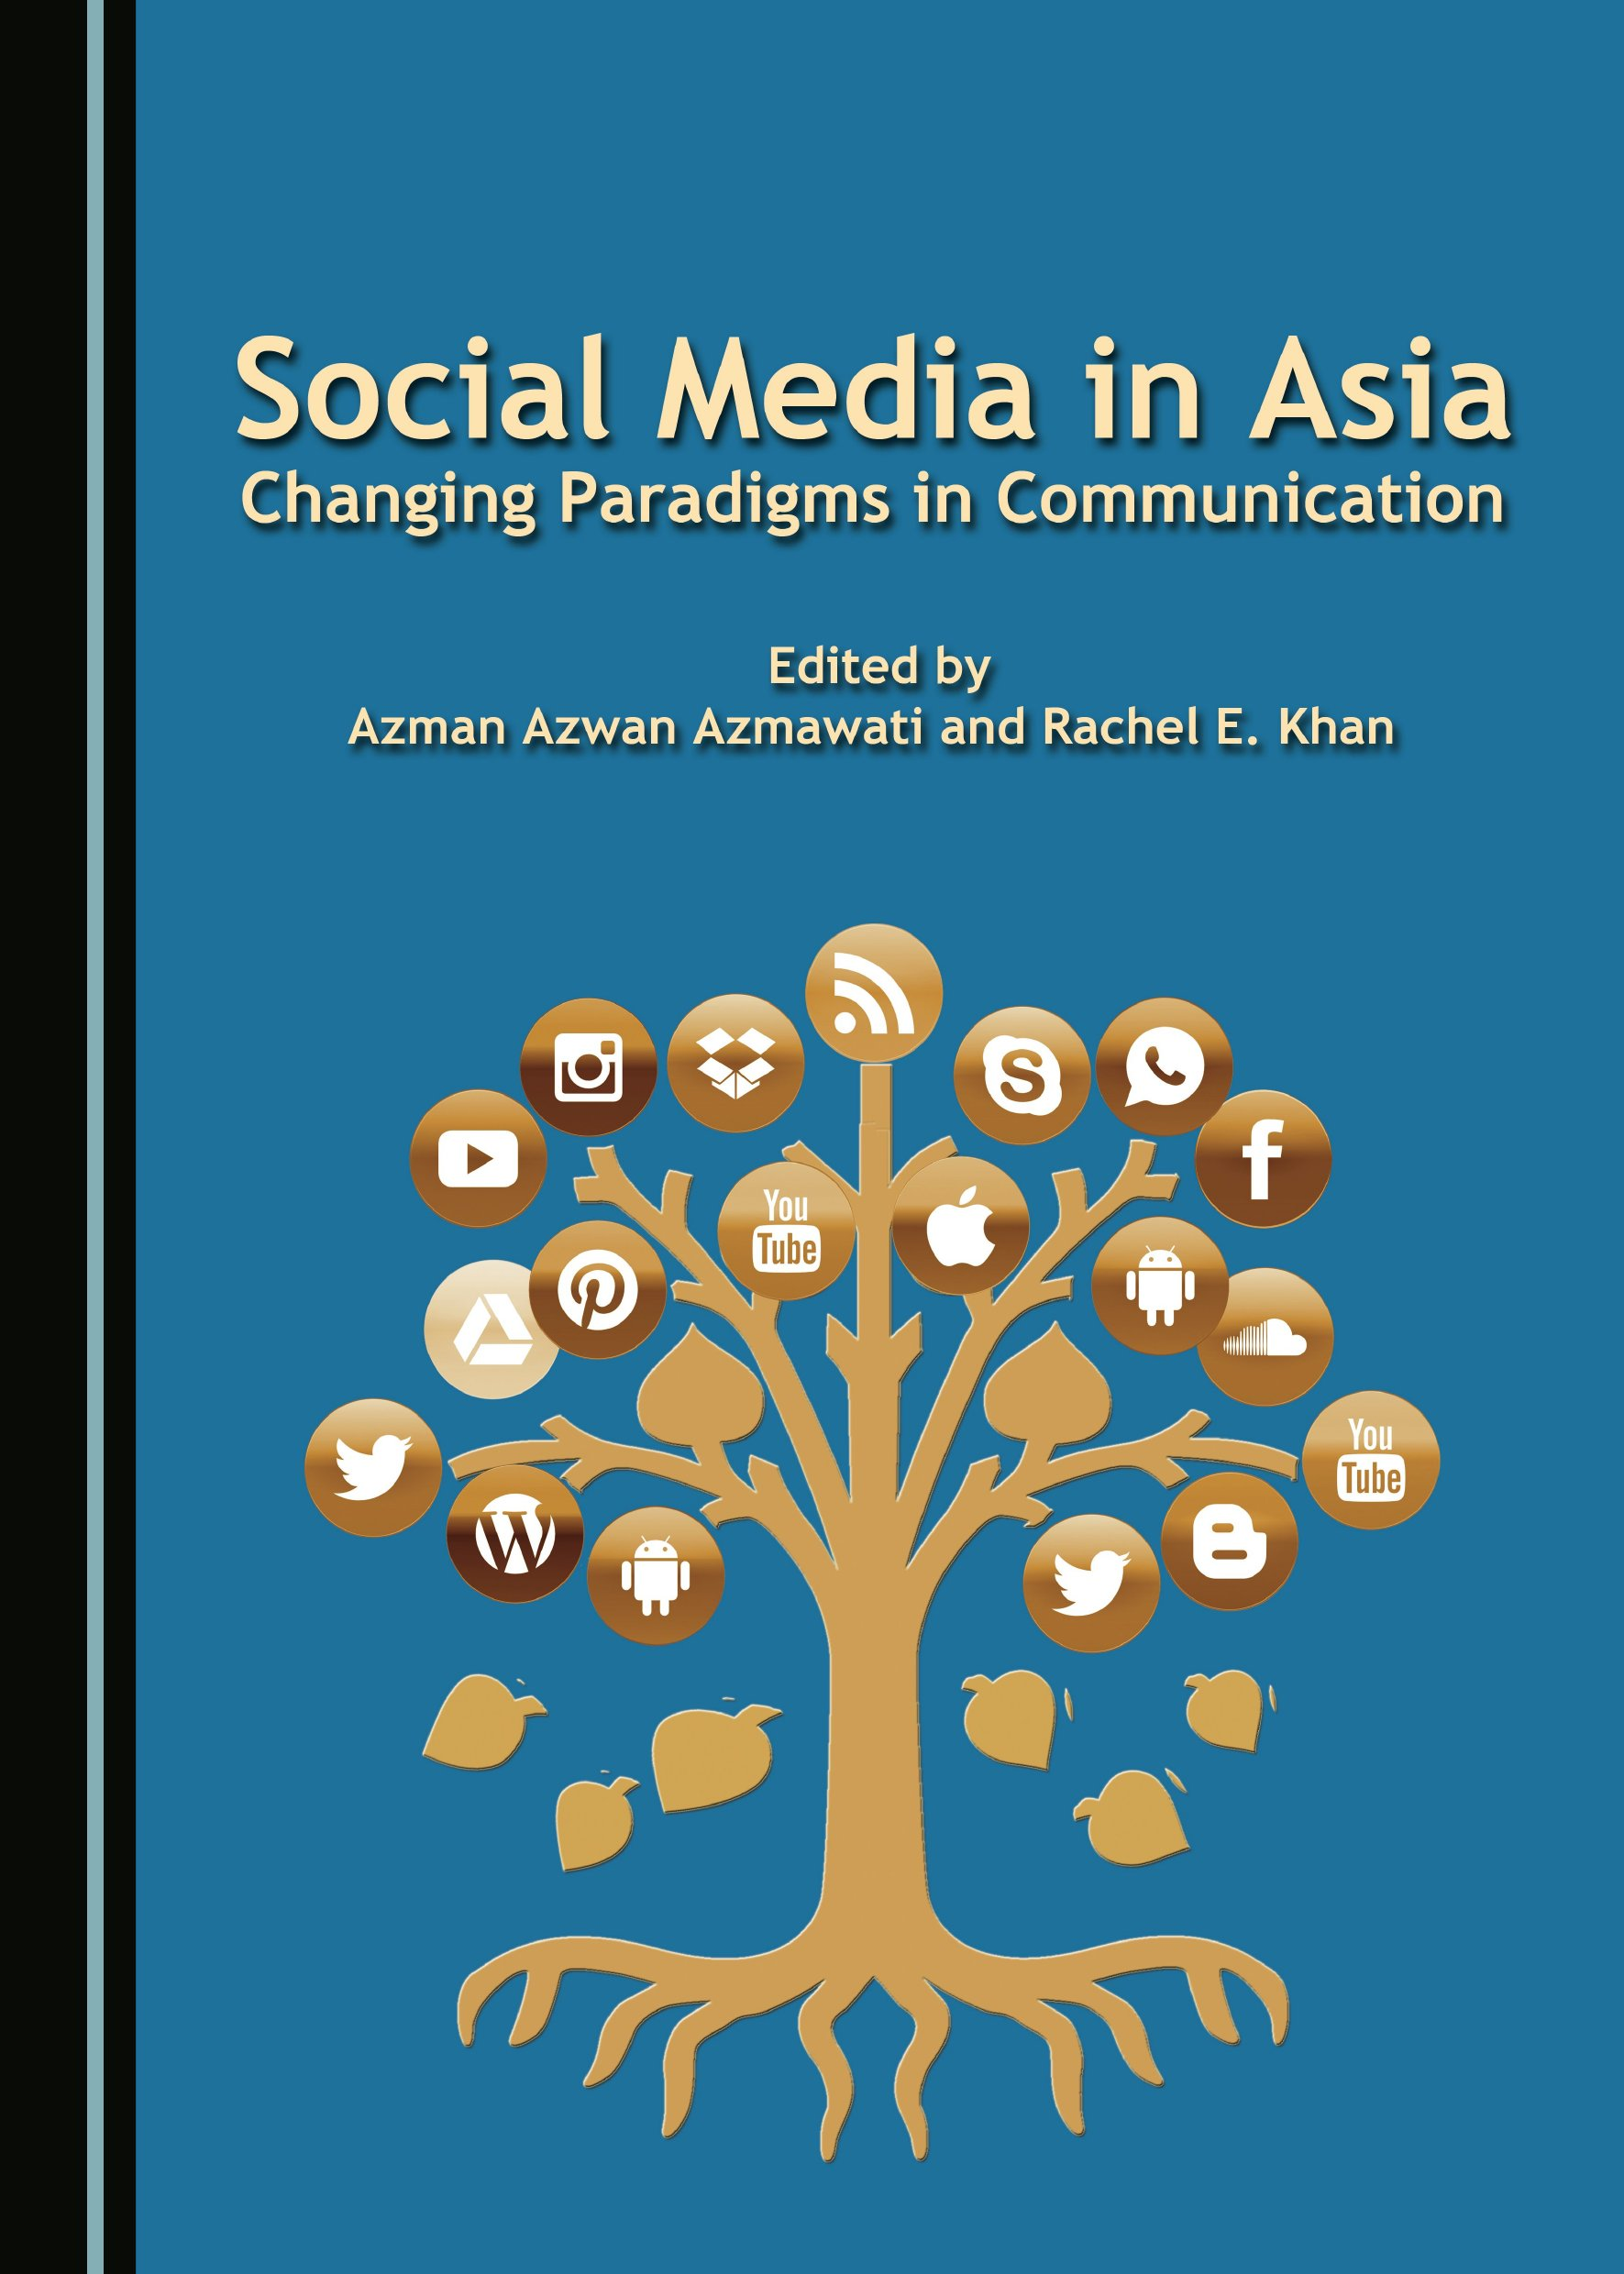 Social Media in Asia: Changing Paradigms of Communication